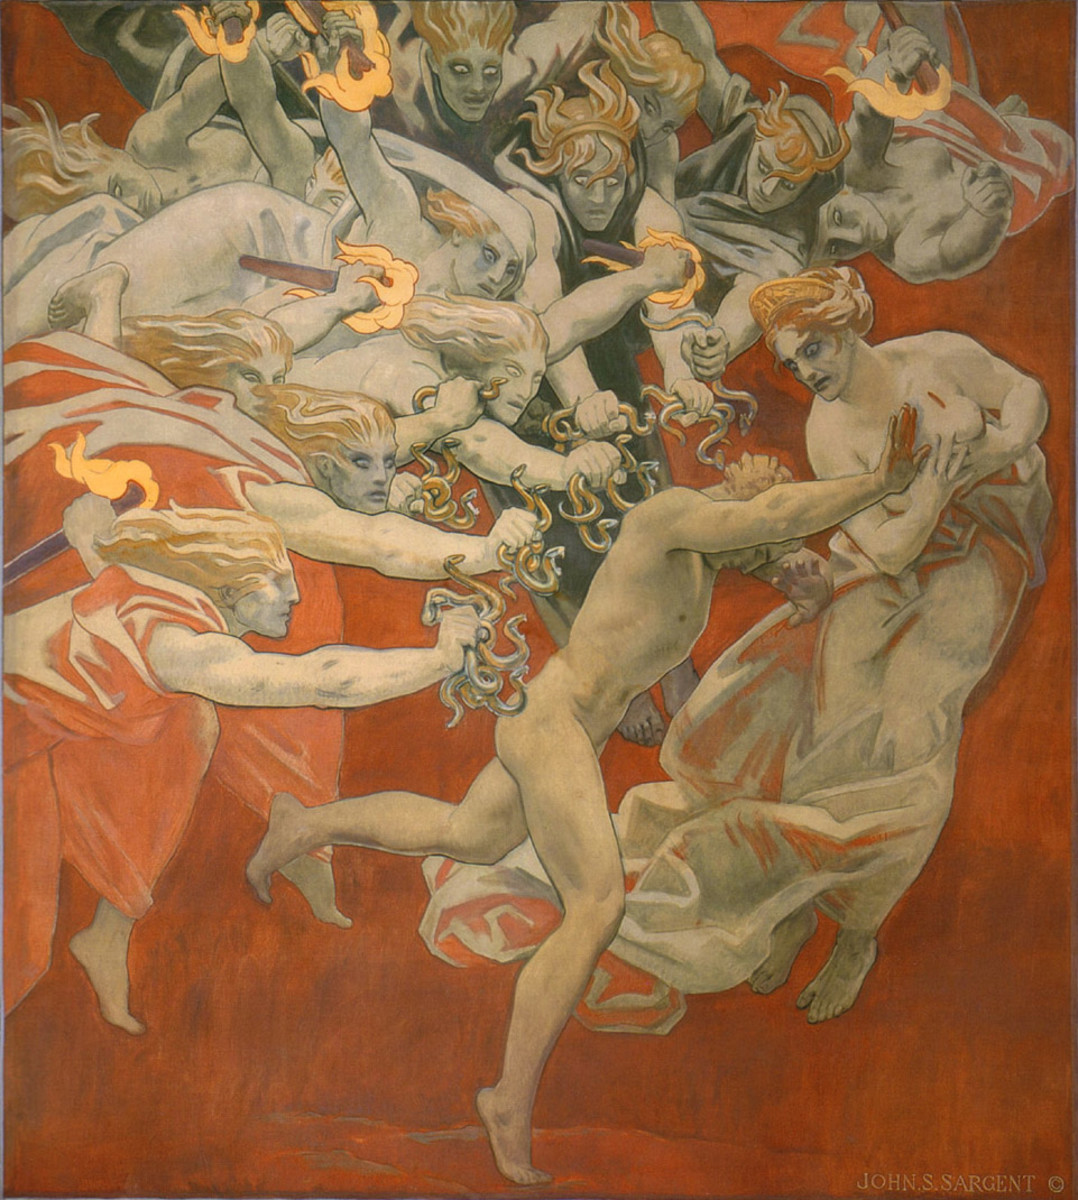 The Furies pursue Orestes